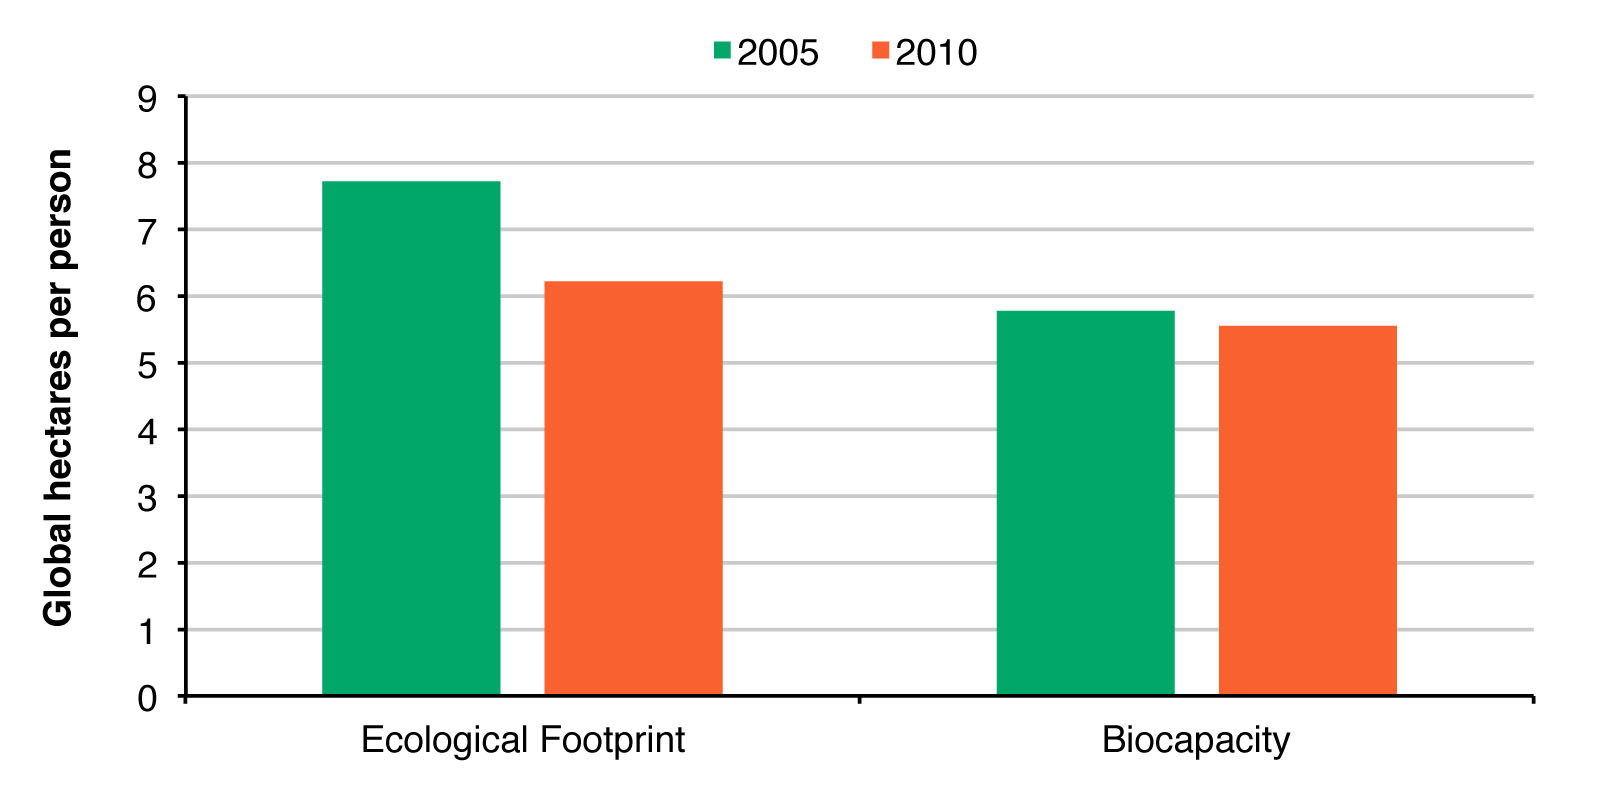 Figure 1. Comparison of trends in Ontario's Ecological Footprint and Biocapacity per person, 2005-2010.